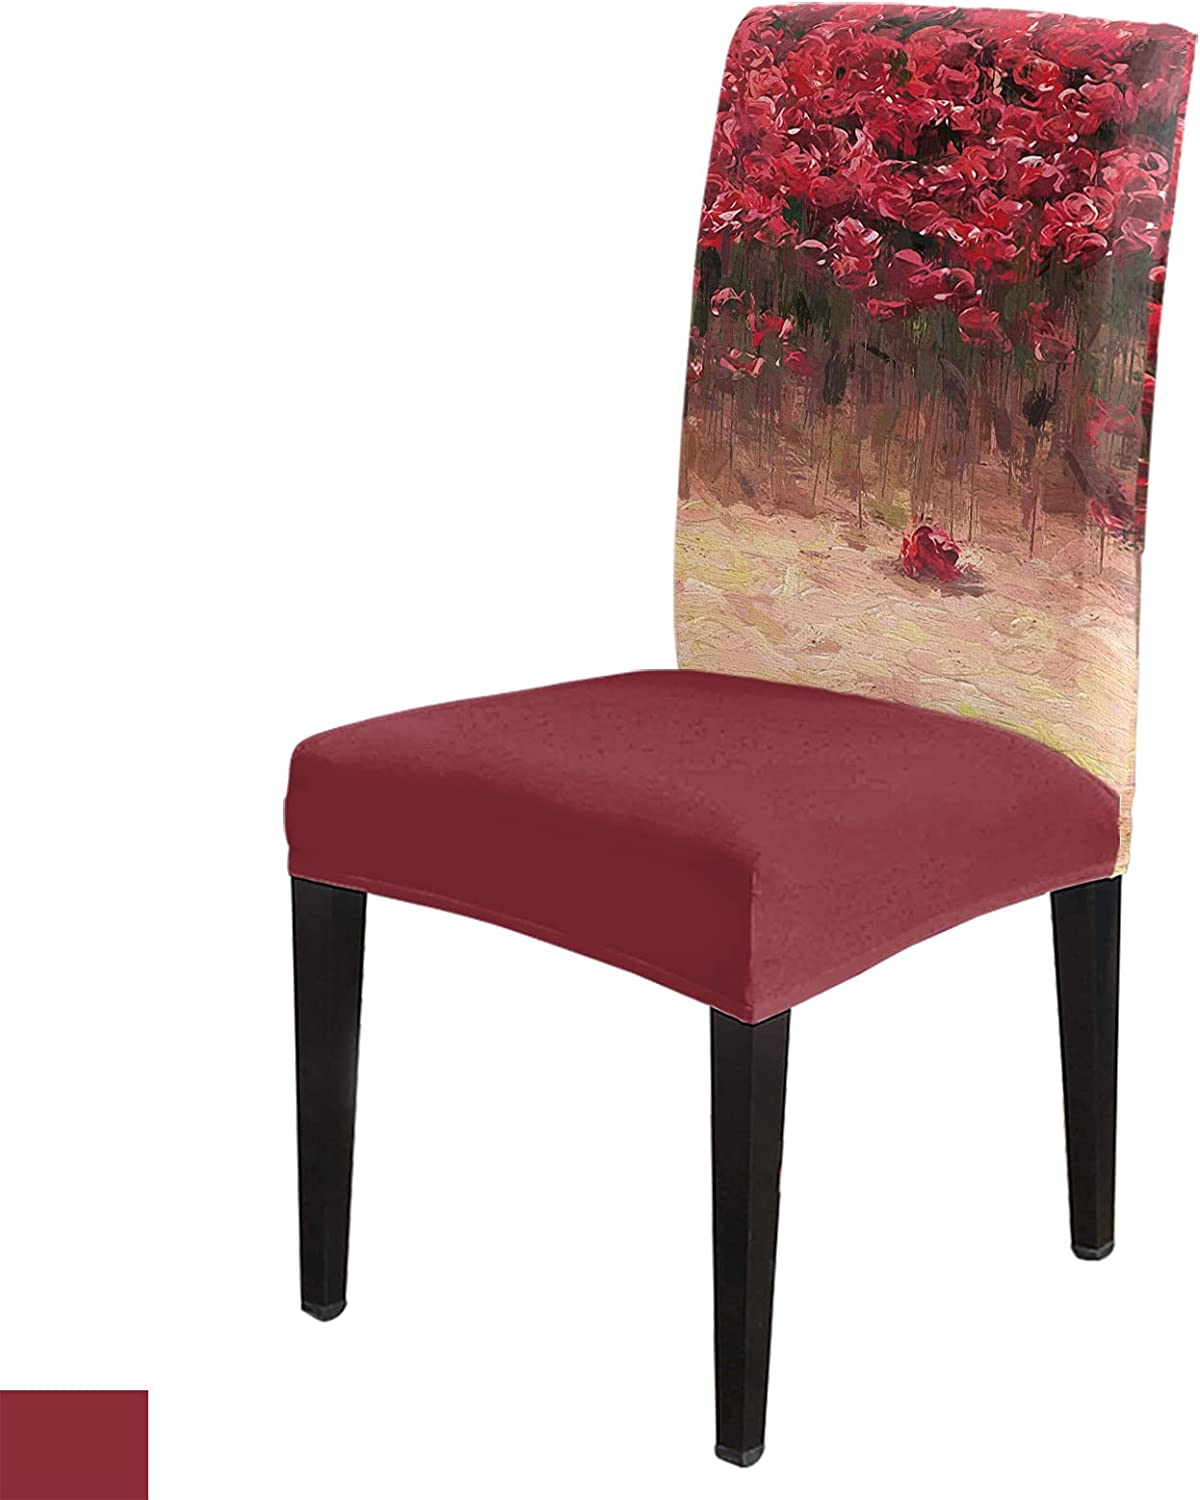 Flower Chair Slip Cover Set of with Elasti Seat Covers 6 Dining Choice Limited Special Price